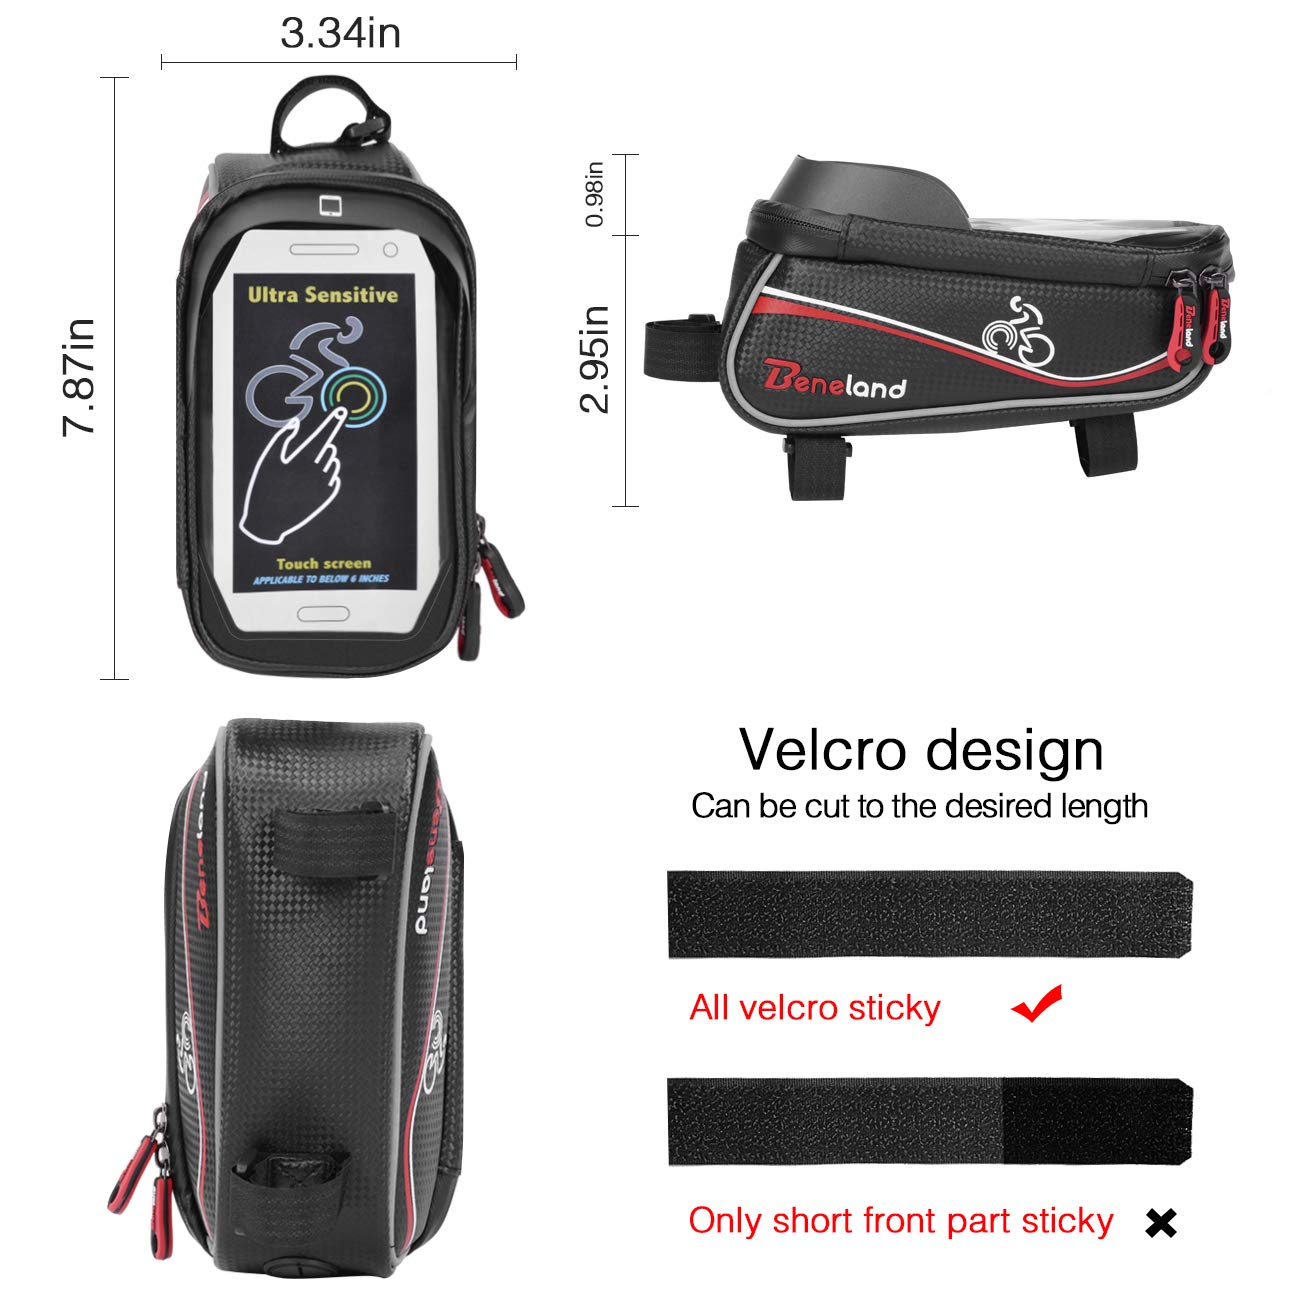 Bike Bag, Frame Bike Bag with Waterproof Touch Screen Phone Holder Case for iPhone X 8 7 6s 6 plus 5s 5/Samsung Galaxy s7 s6 note 7 Cellphone Below 6.0 Inch by Beneland (Image #2)